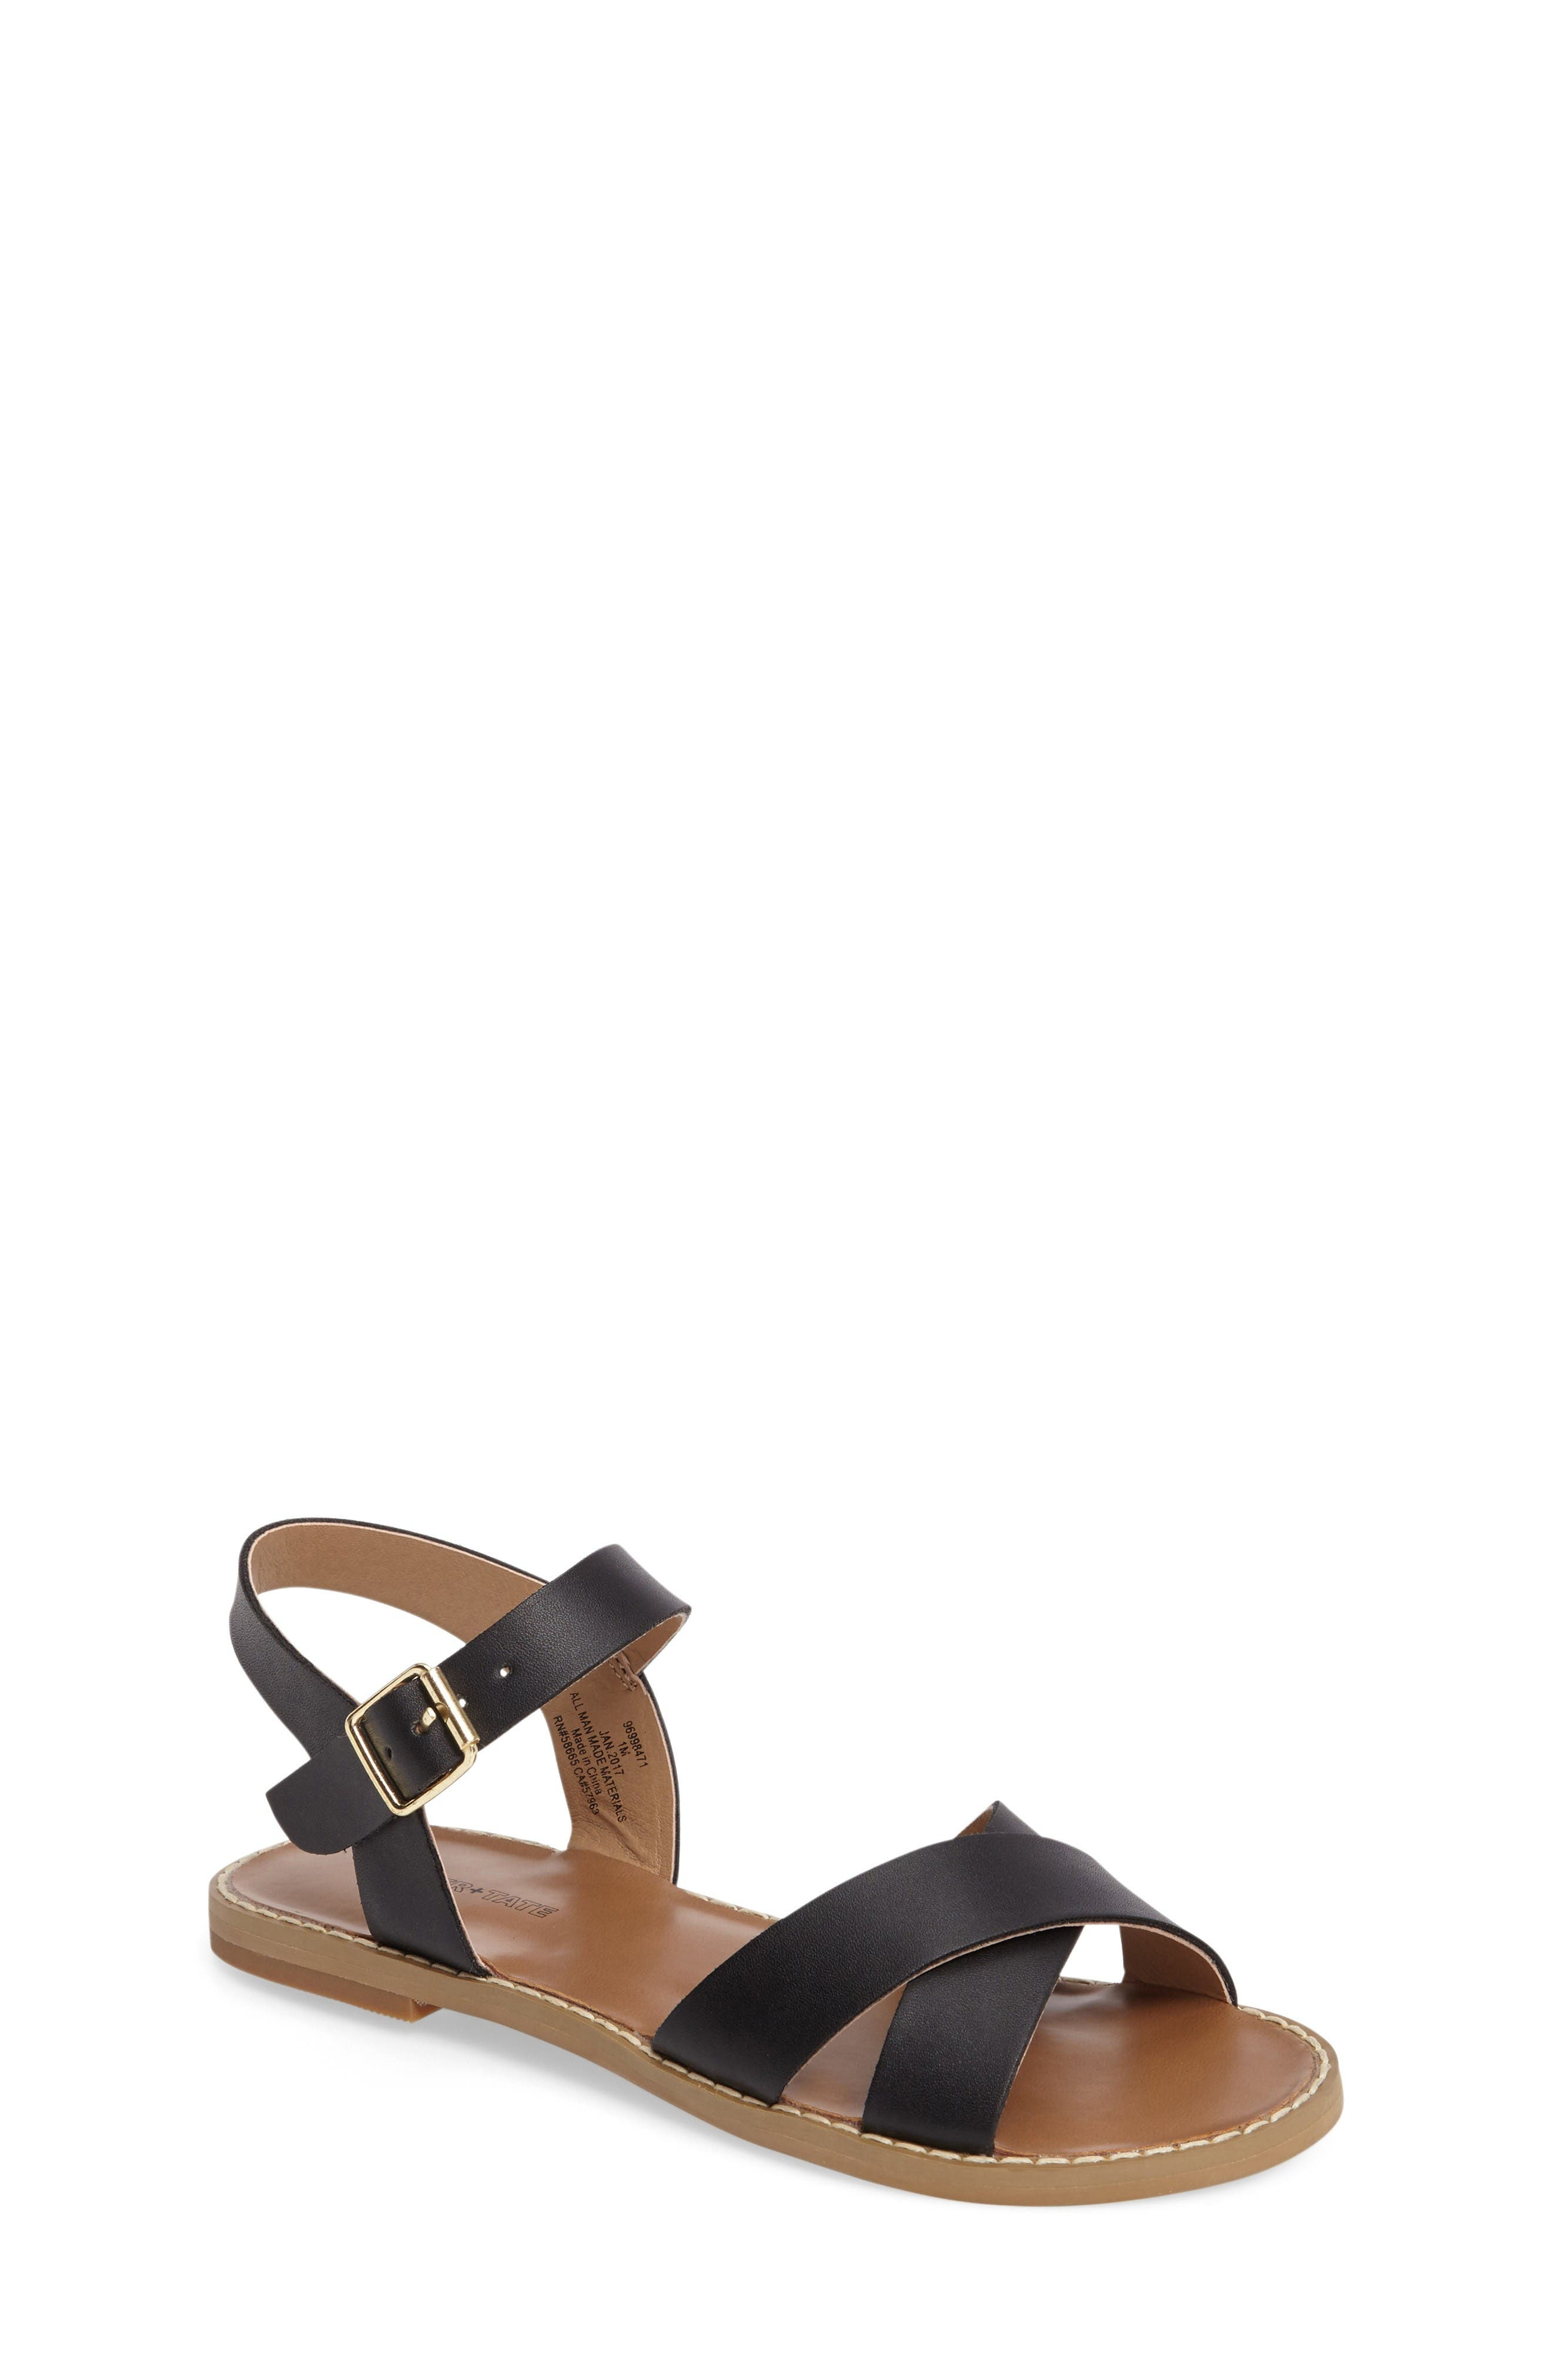 Tucker + Tate Arya Cross Strap Sandal (Toddler, Little Kid & Big Kid)